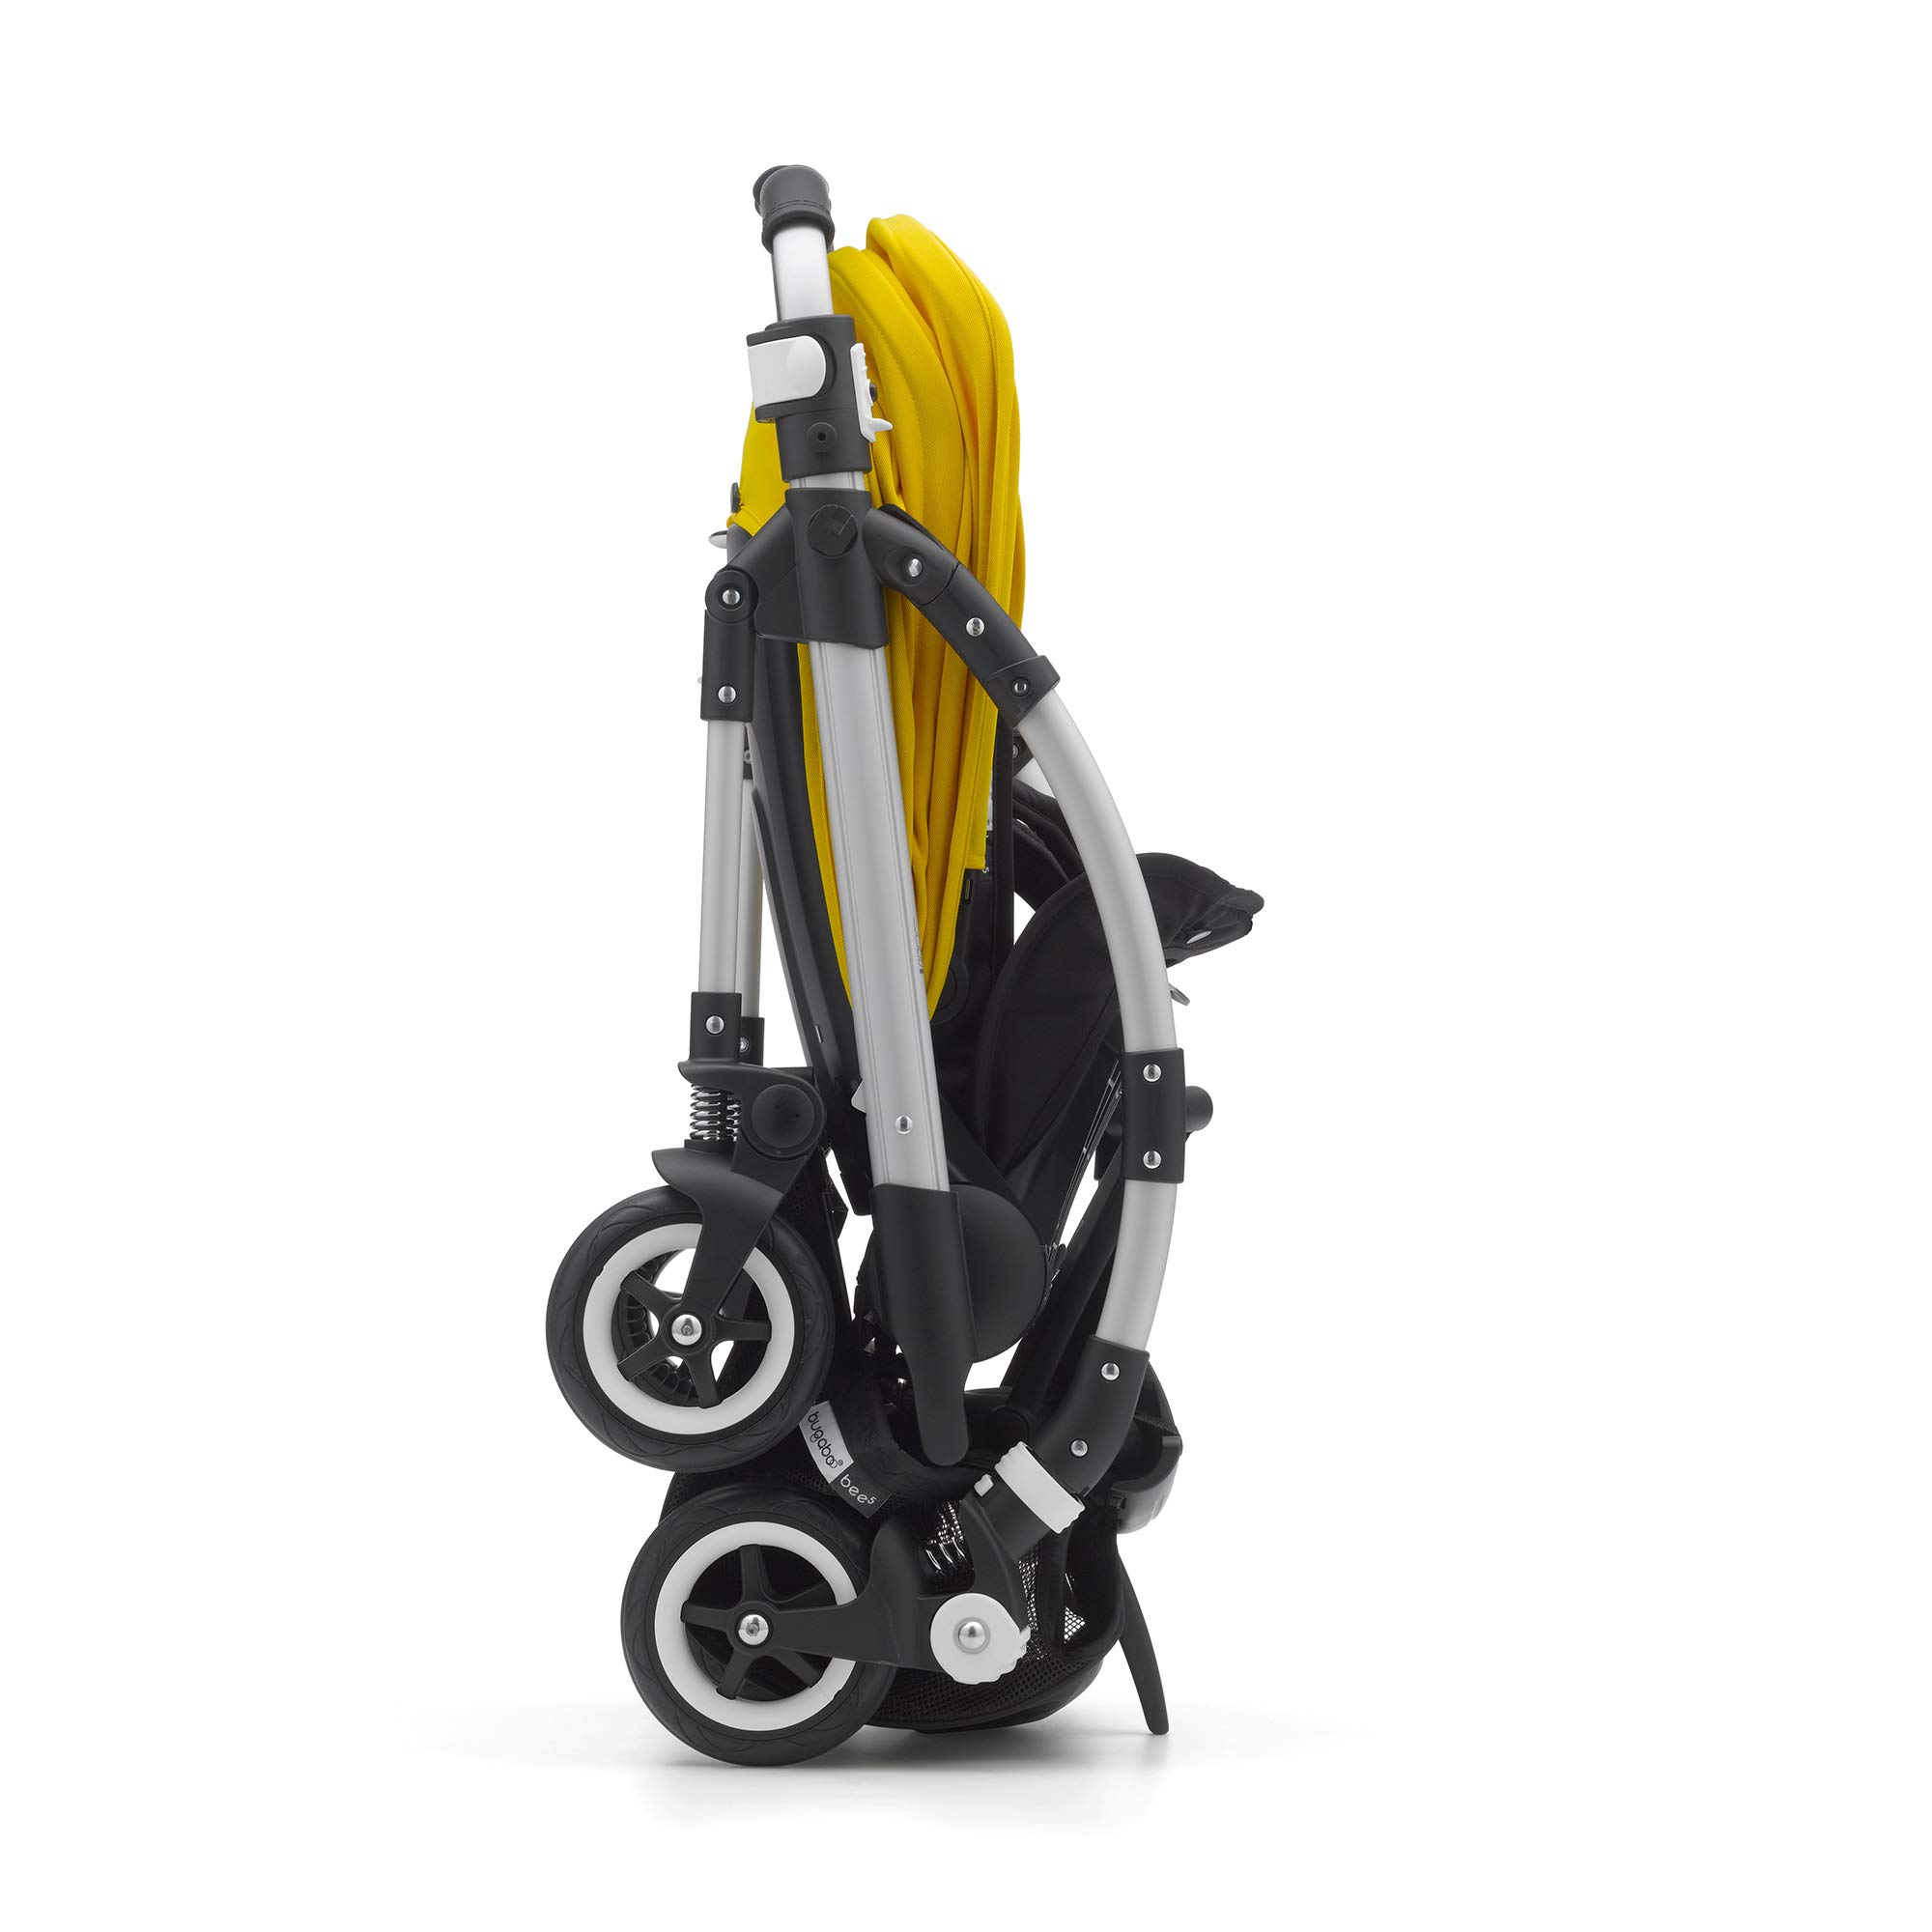 Bugaboo Bee Self Stand Extension - Stress Free Storage at Home or on The Go! Compatible with The Bugaboo Bee, Bee3 and Bee5 by Bugaboo